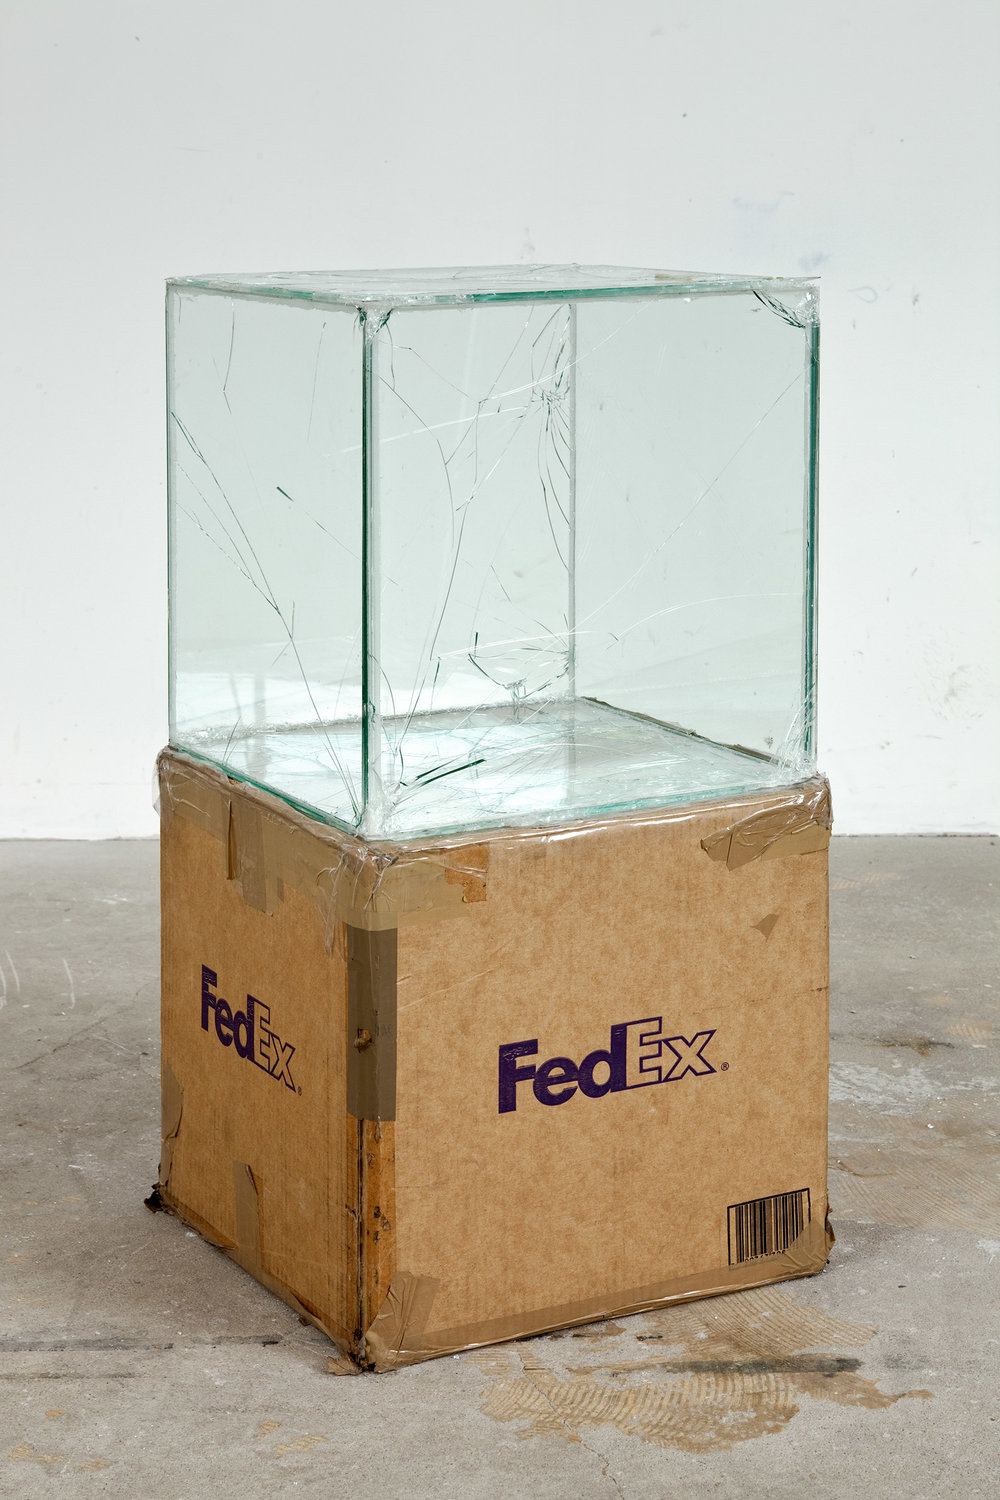 FedEx Kraft Box 2005 FEDEX 330504 10/05 SSCC, Priority Overnight, Los Angeles-Miami trk#865344981299, October 29–30, 2008, Priority Overnight, Miami–Ann Arbor trk#861049125115, March 03–04, 2009, Standard Overnight, Ann Arbor–Los Angeles trk#868274625749, July 09–10, 2009, Standard Overnight, Los Angeles–San Francisco trk#878069766471, August 27–28, 2009, Standard Overnight, San Francisco–Los Angeles trk#870342520145, November 12–13, 2009, International Priority, Los Angeles–London trk#798269222978, April 10–12, 2012   2008–  Laminated glass, FedEx shipping box, accrued FedEx shipping and tracking labels, silicone, metal, tape  16 x 16 x 16 inches   FedEx Glass Works, 2007–    Pulley, Cogwheels, Mirrors, and Windows, 2009